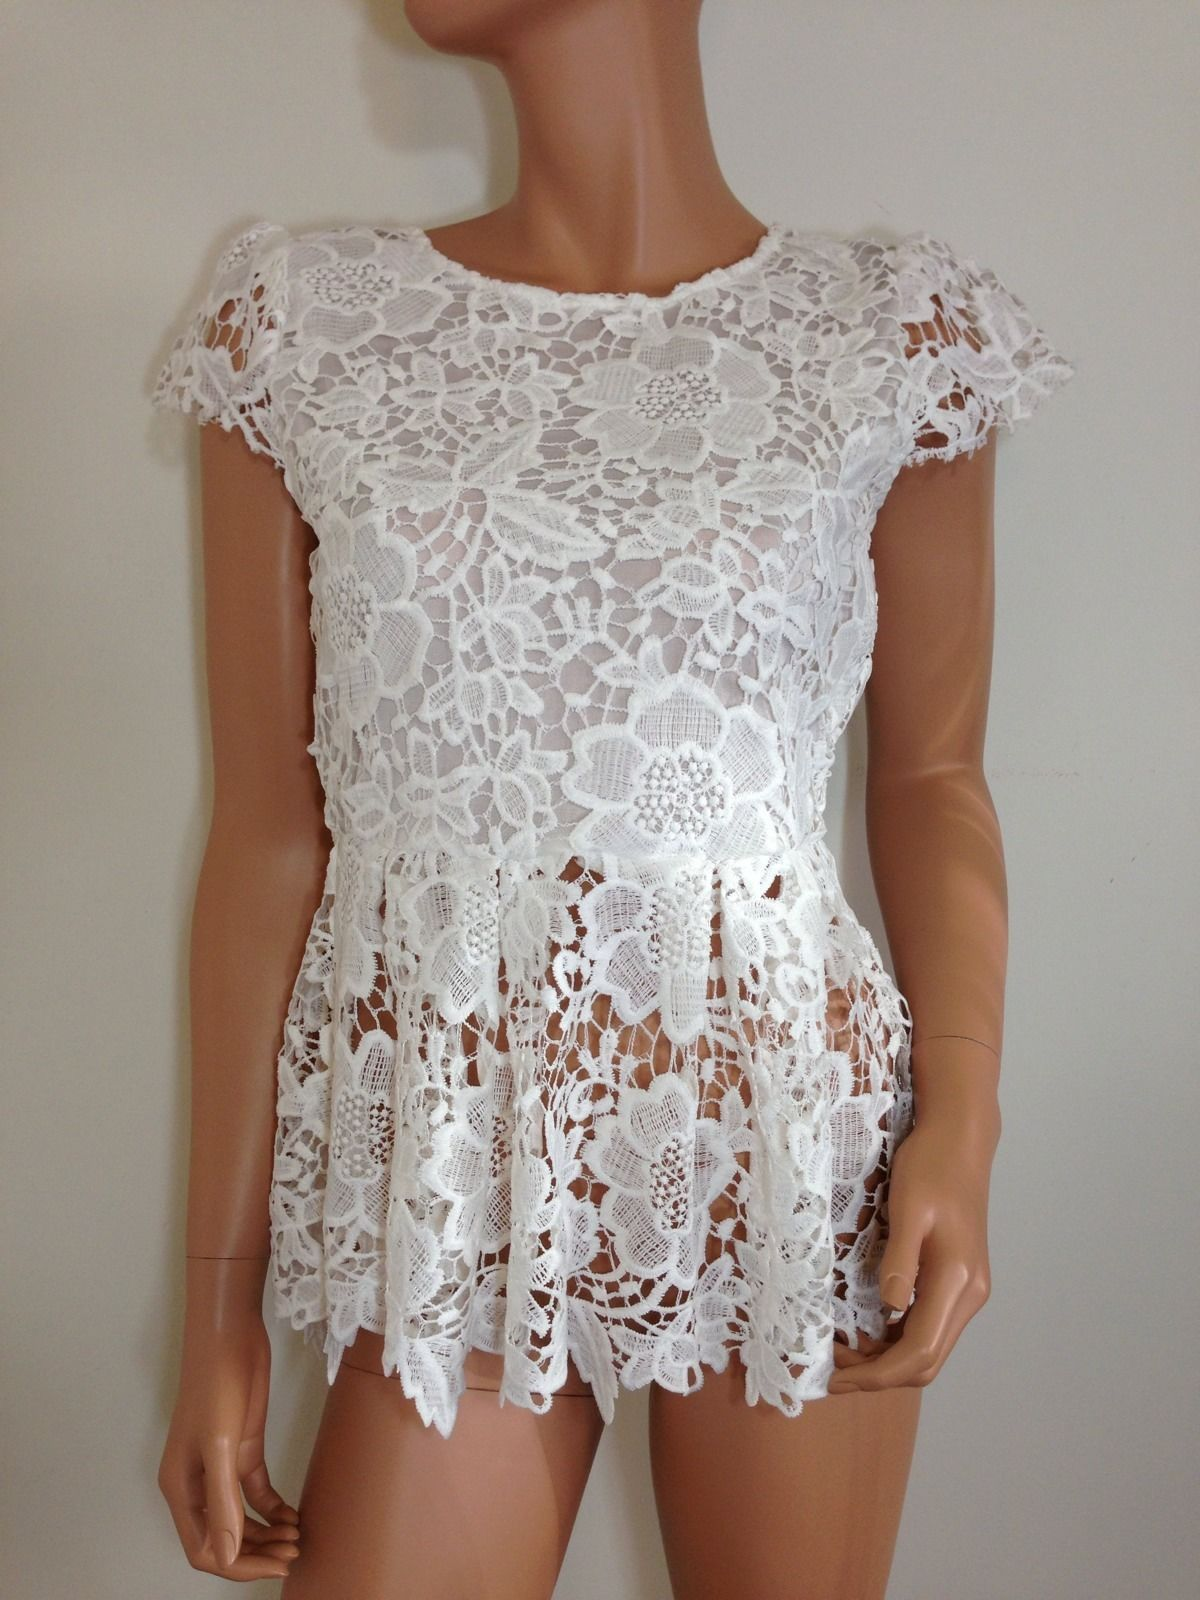 White Lace Top Crochet Blouse Tunic wedding SMALL - Tops ...